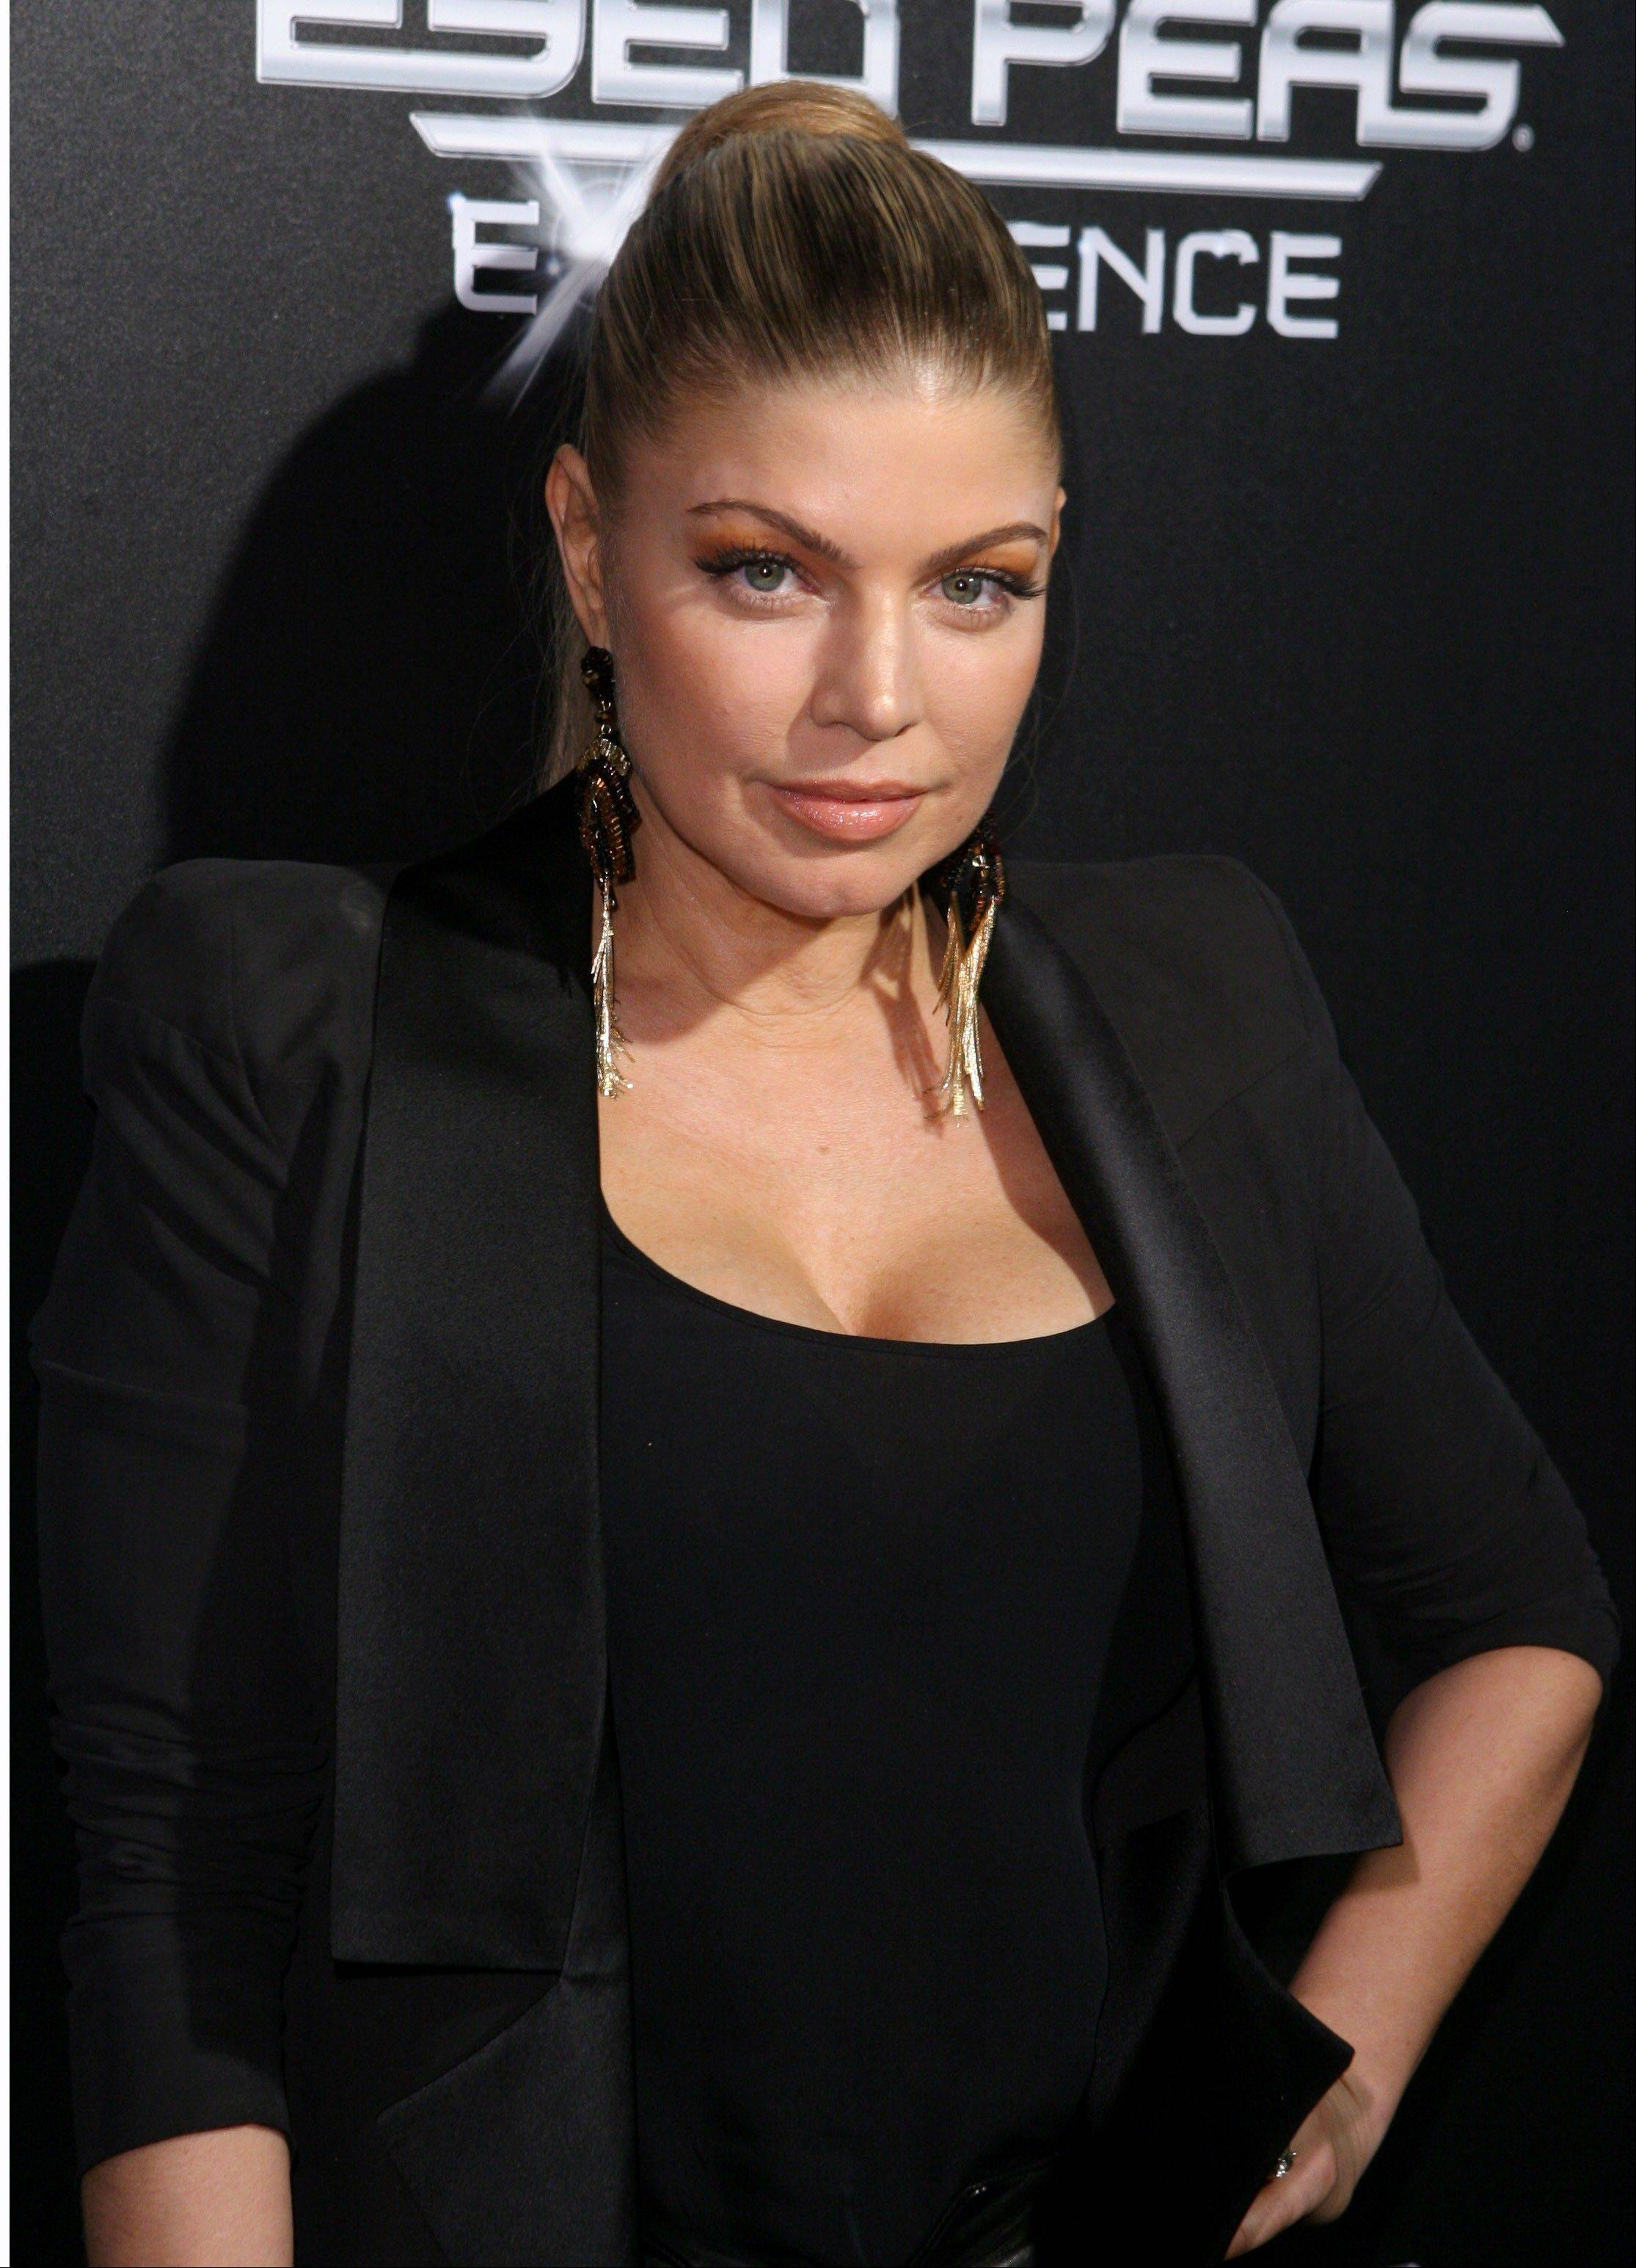 Singer Fergie, of the Black Eyed Peas, has officially changed her name: The singer born Stacy Ann Ferguson is now Fergie Duhamel.